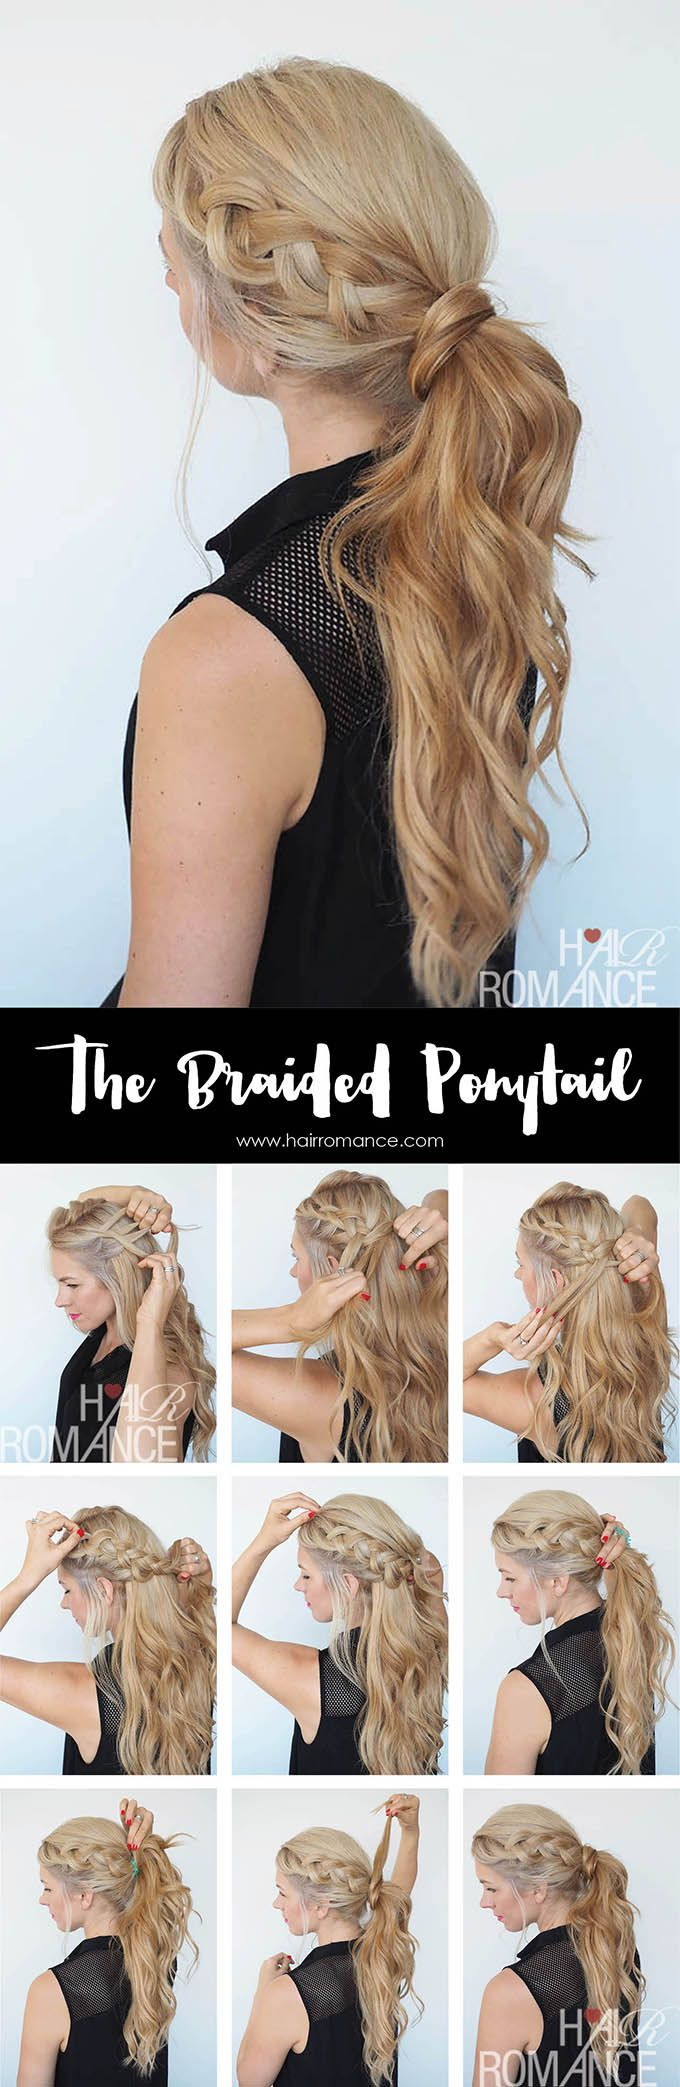 Surprising 1000 Ideas About Braided Ponytail Hairstyles On Pinterest Short Hairstyles For Black Women Fulllsitofus